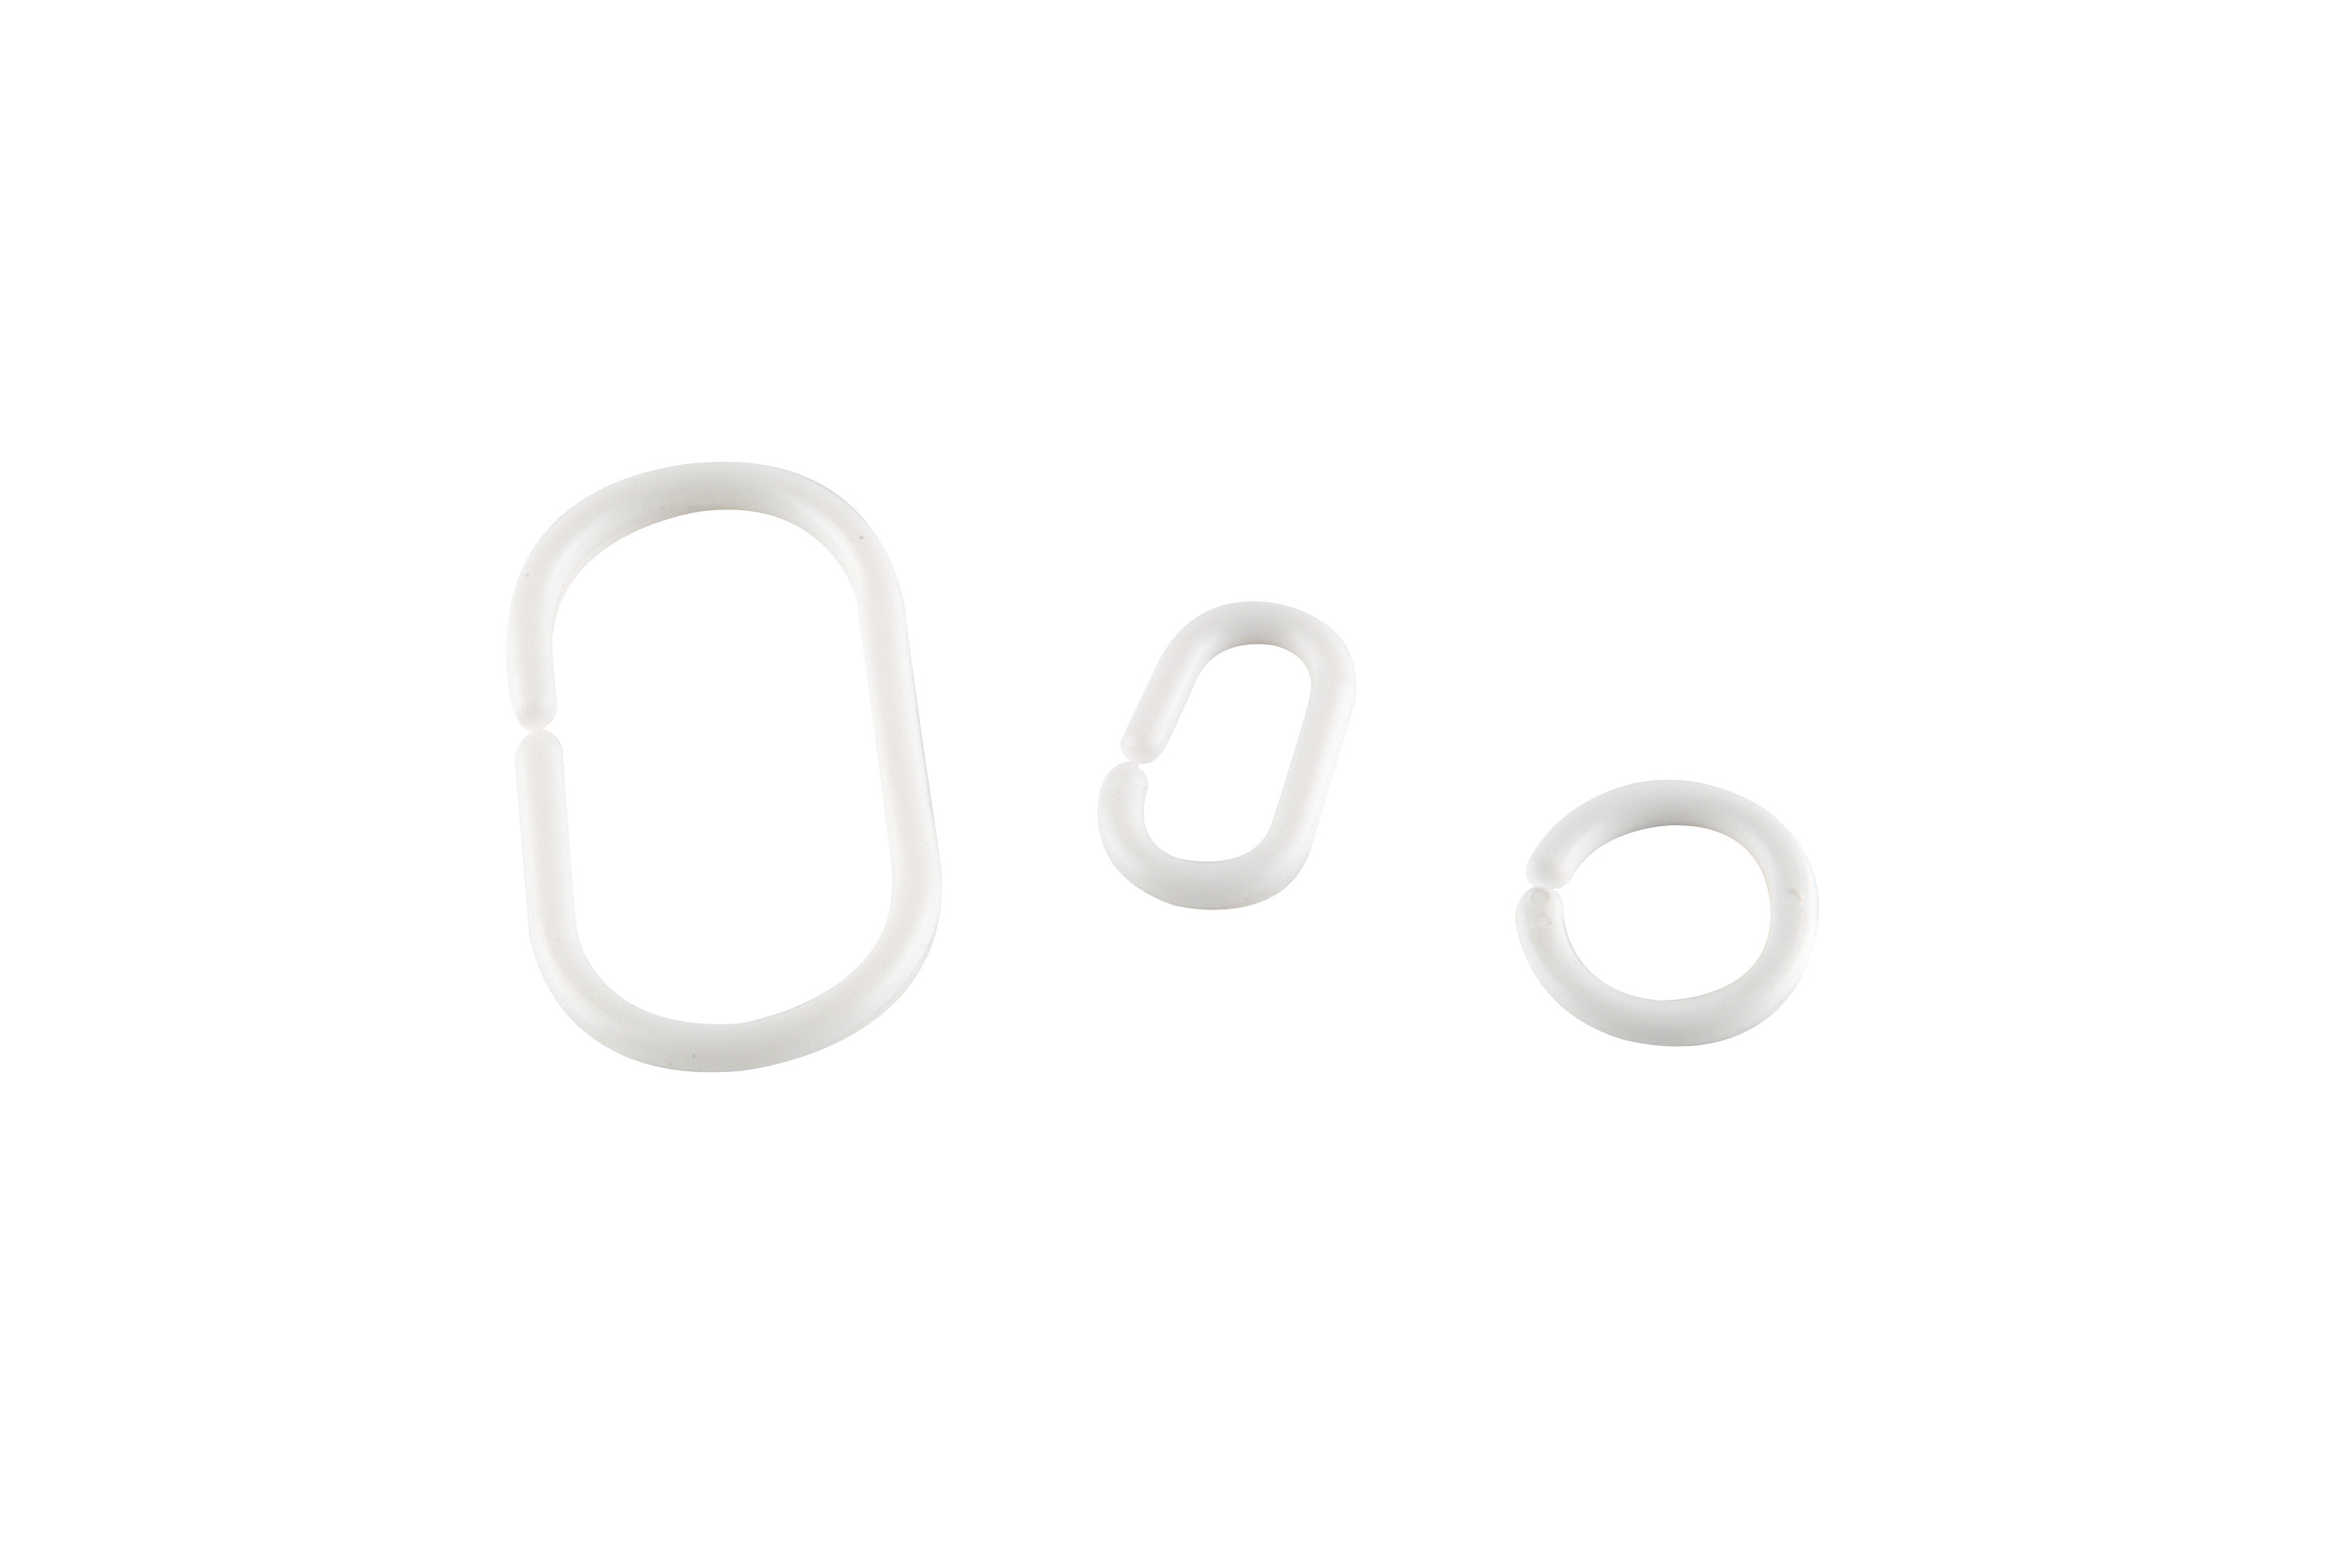 LOCKABLE JOINING RINGS - 20MM OVAL